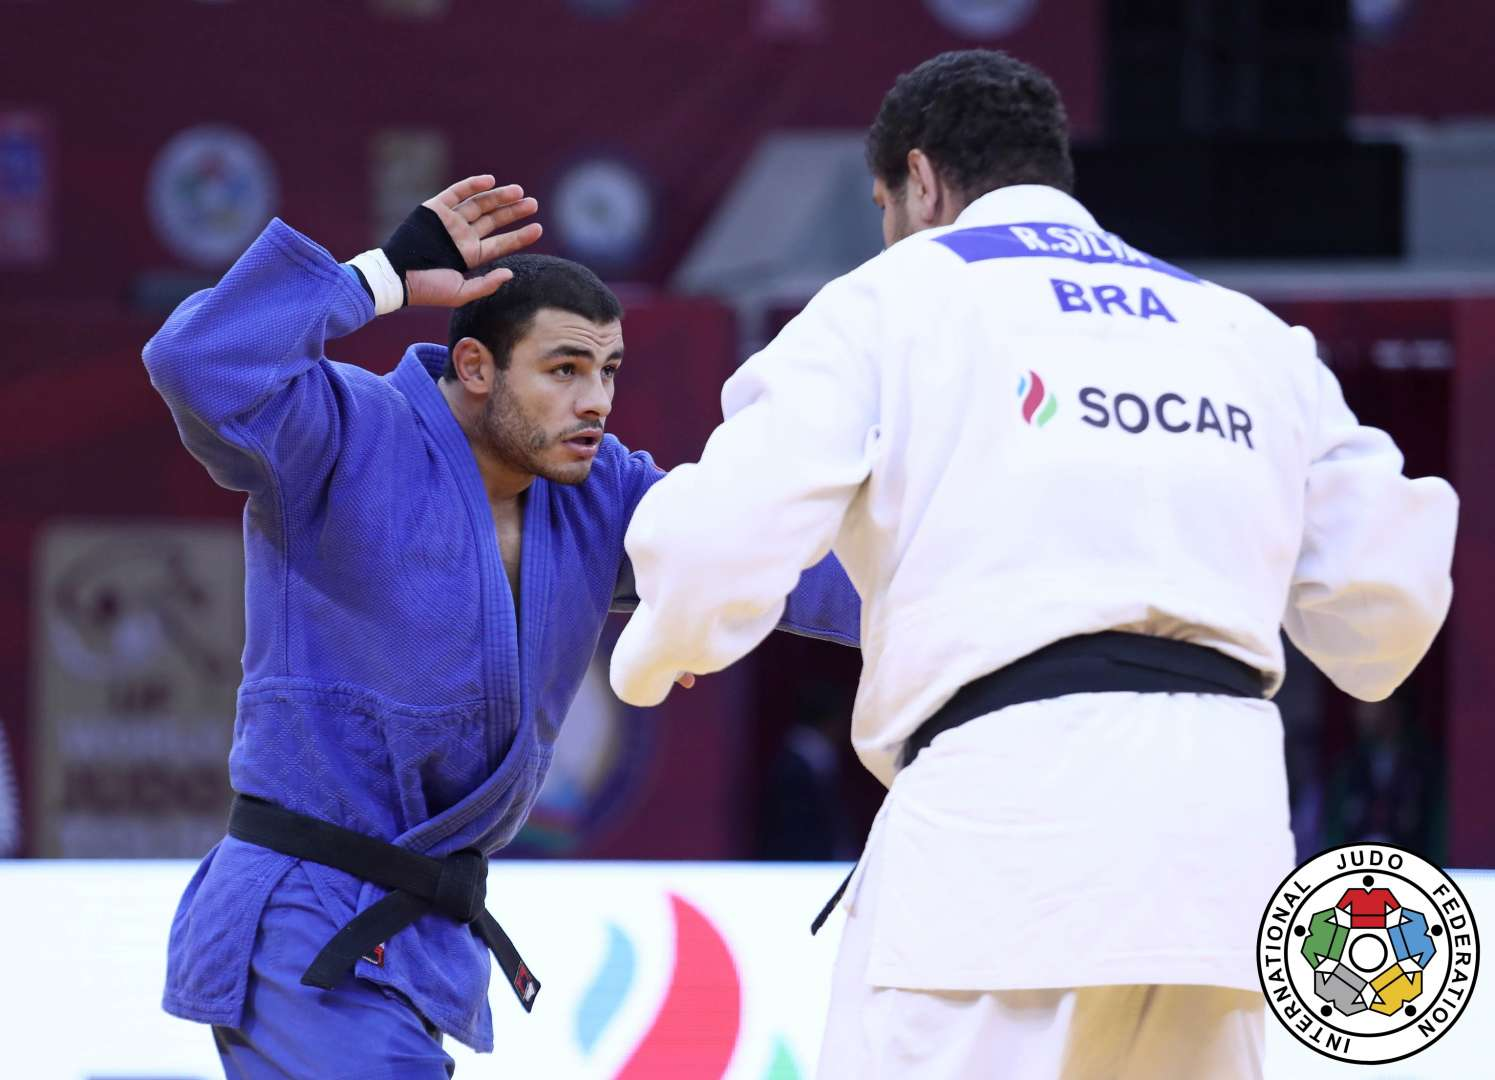 20170312_bakugs_ijf_day3_quarter_final_geo_tushishvili_o100_kg